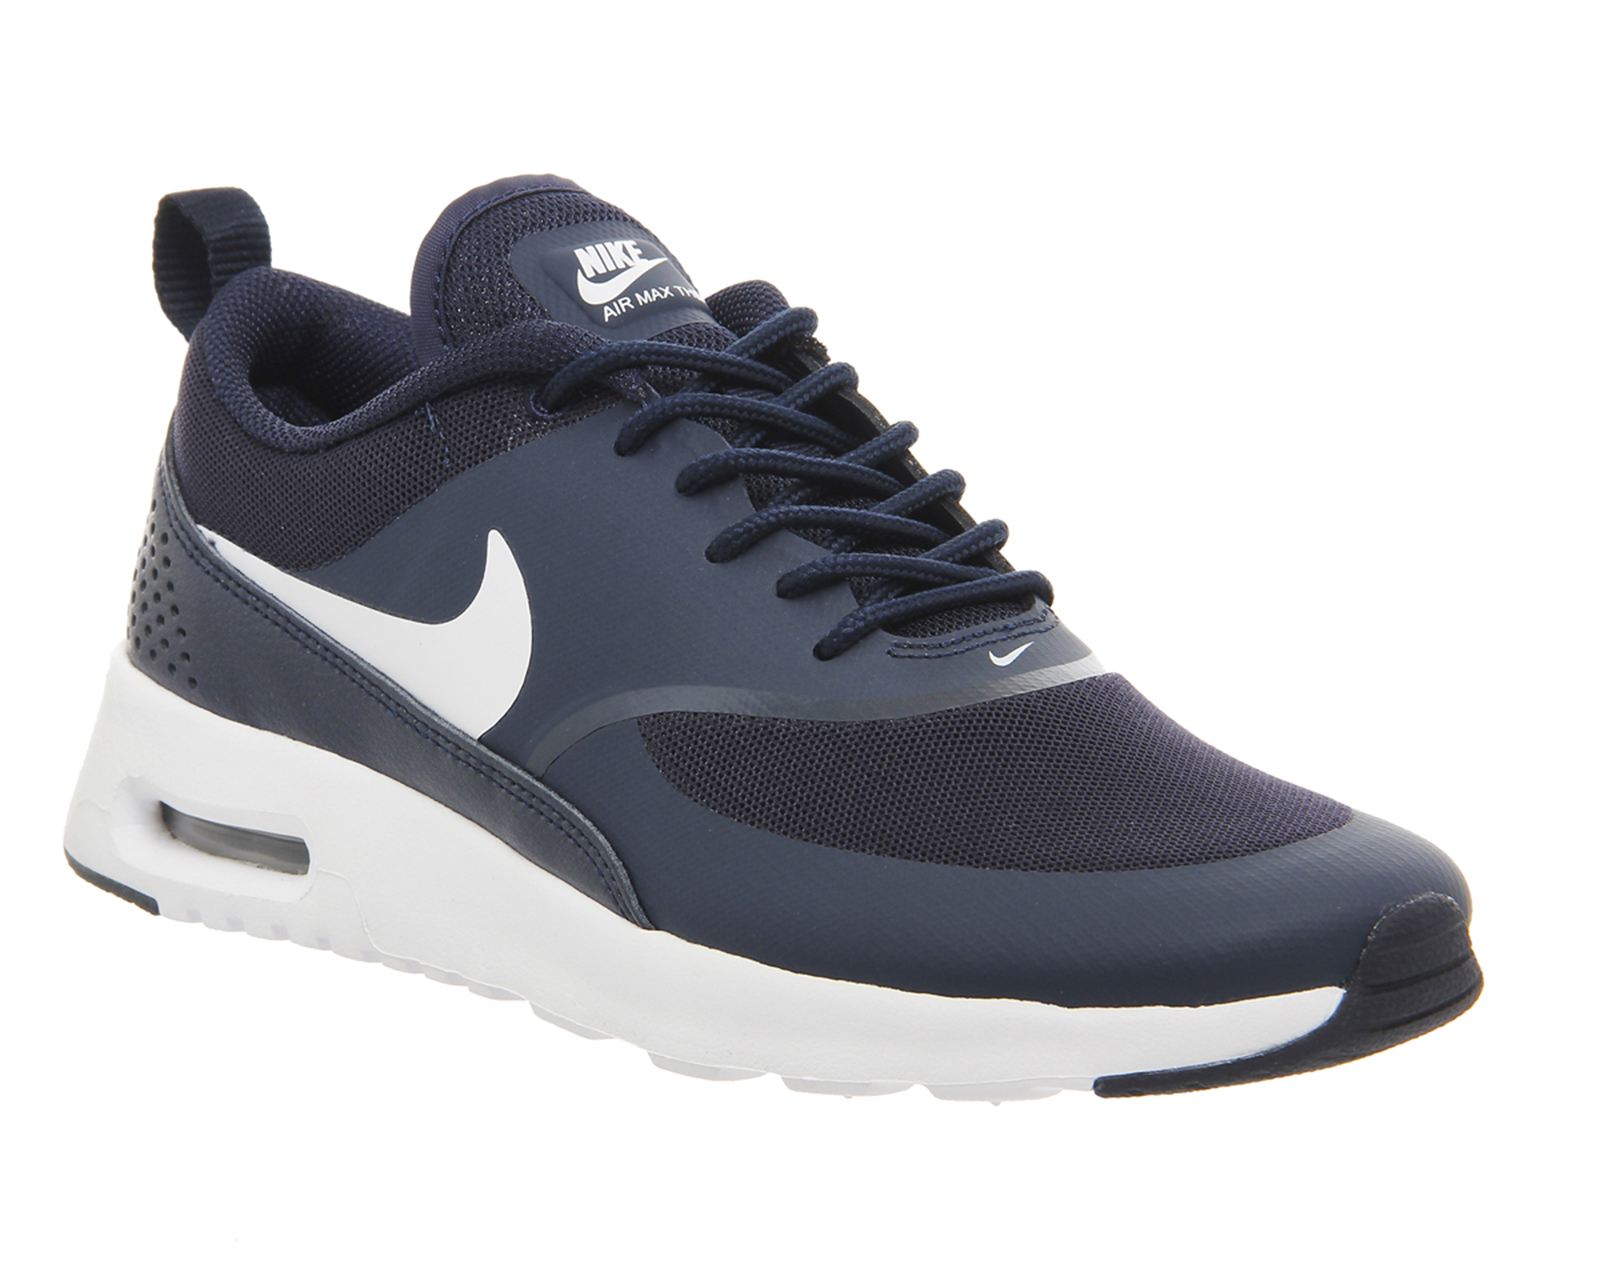 nike air max thea low top sneakers in blue white lyst. Black Bedroom Furniture Sets. Home Design Ideas